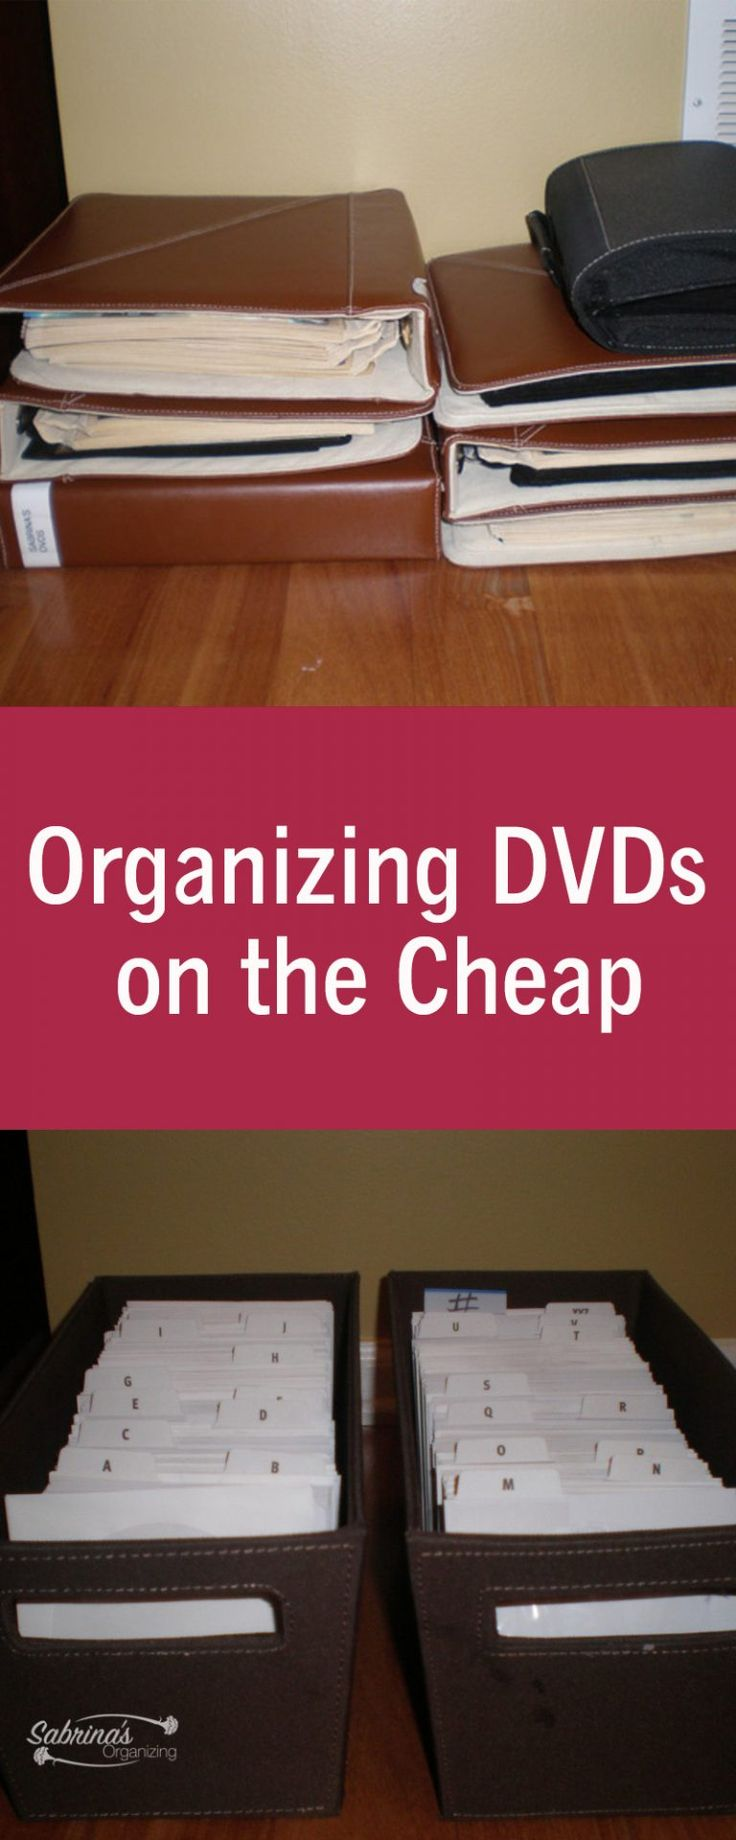 Organizing DVDs on the Cheap - affordable way to organize the DVDs in your home. - Sabrinasorganizing.com